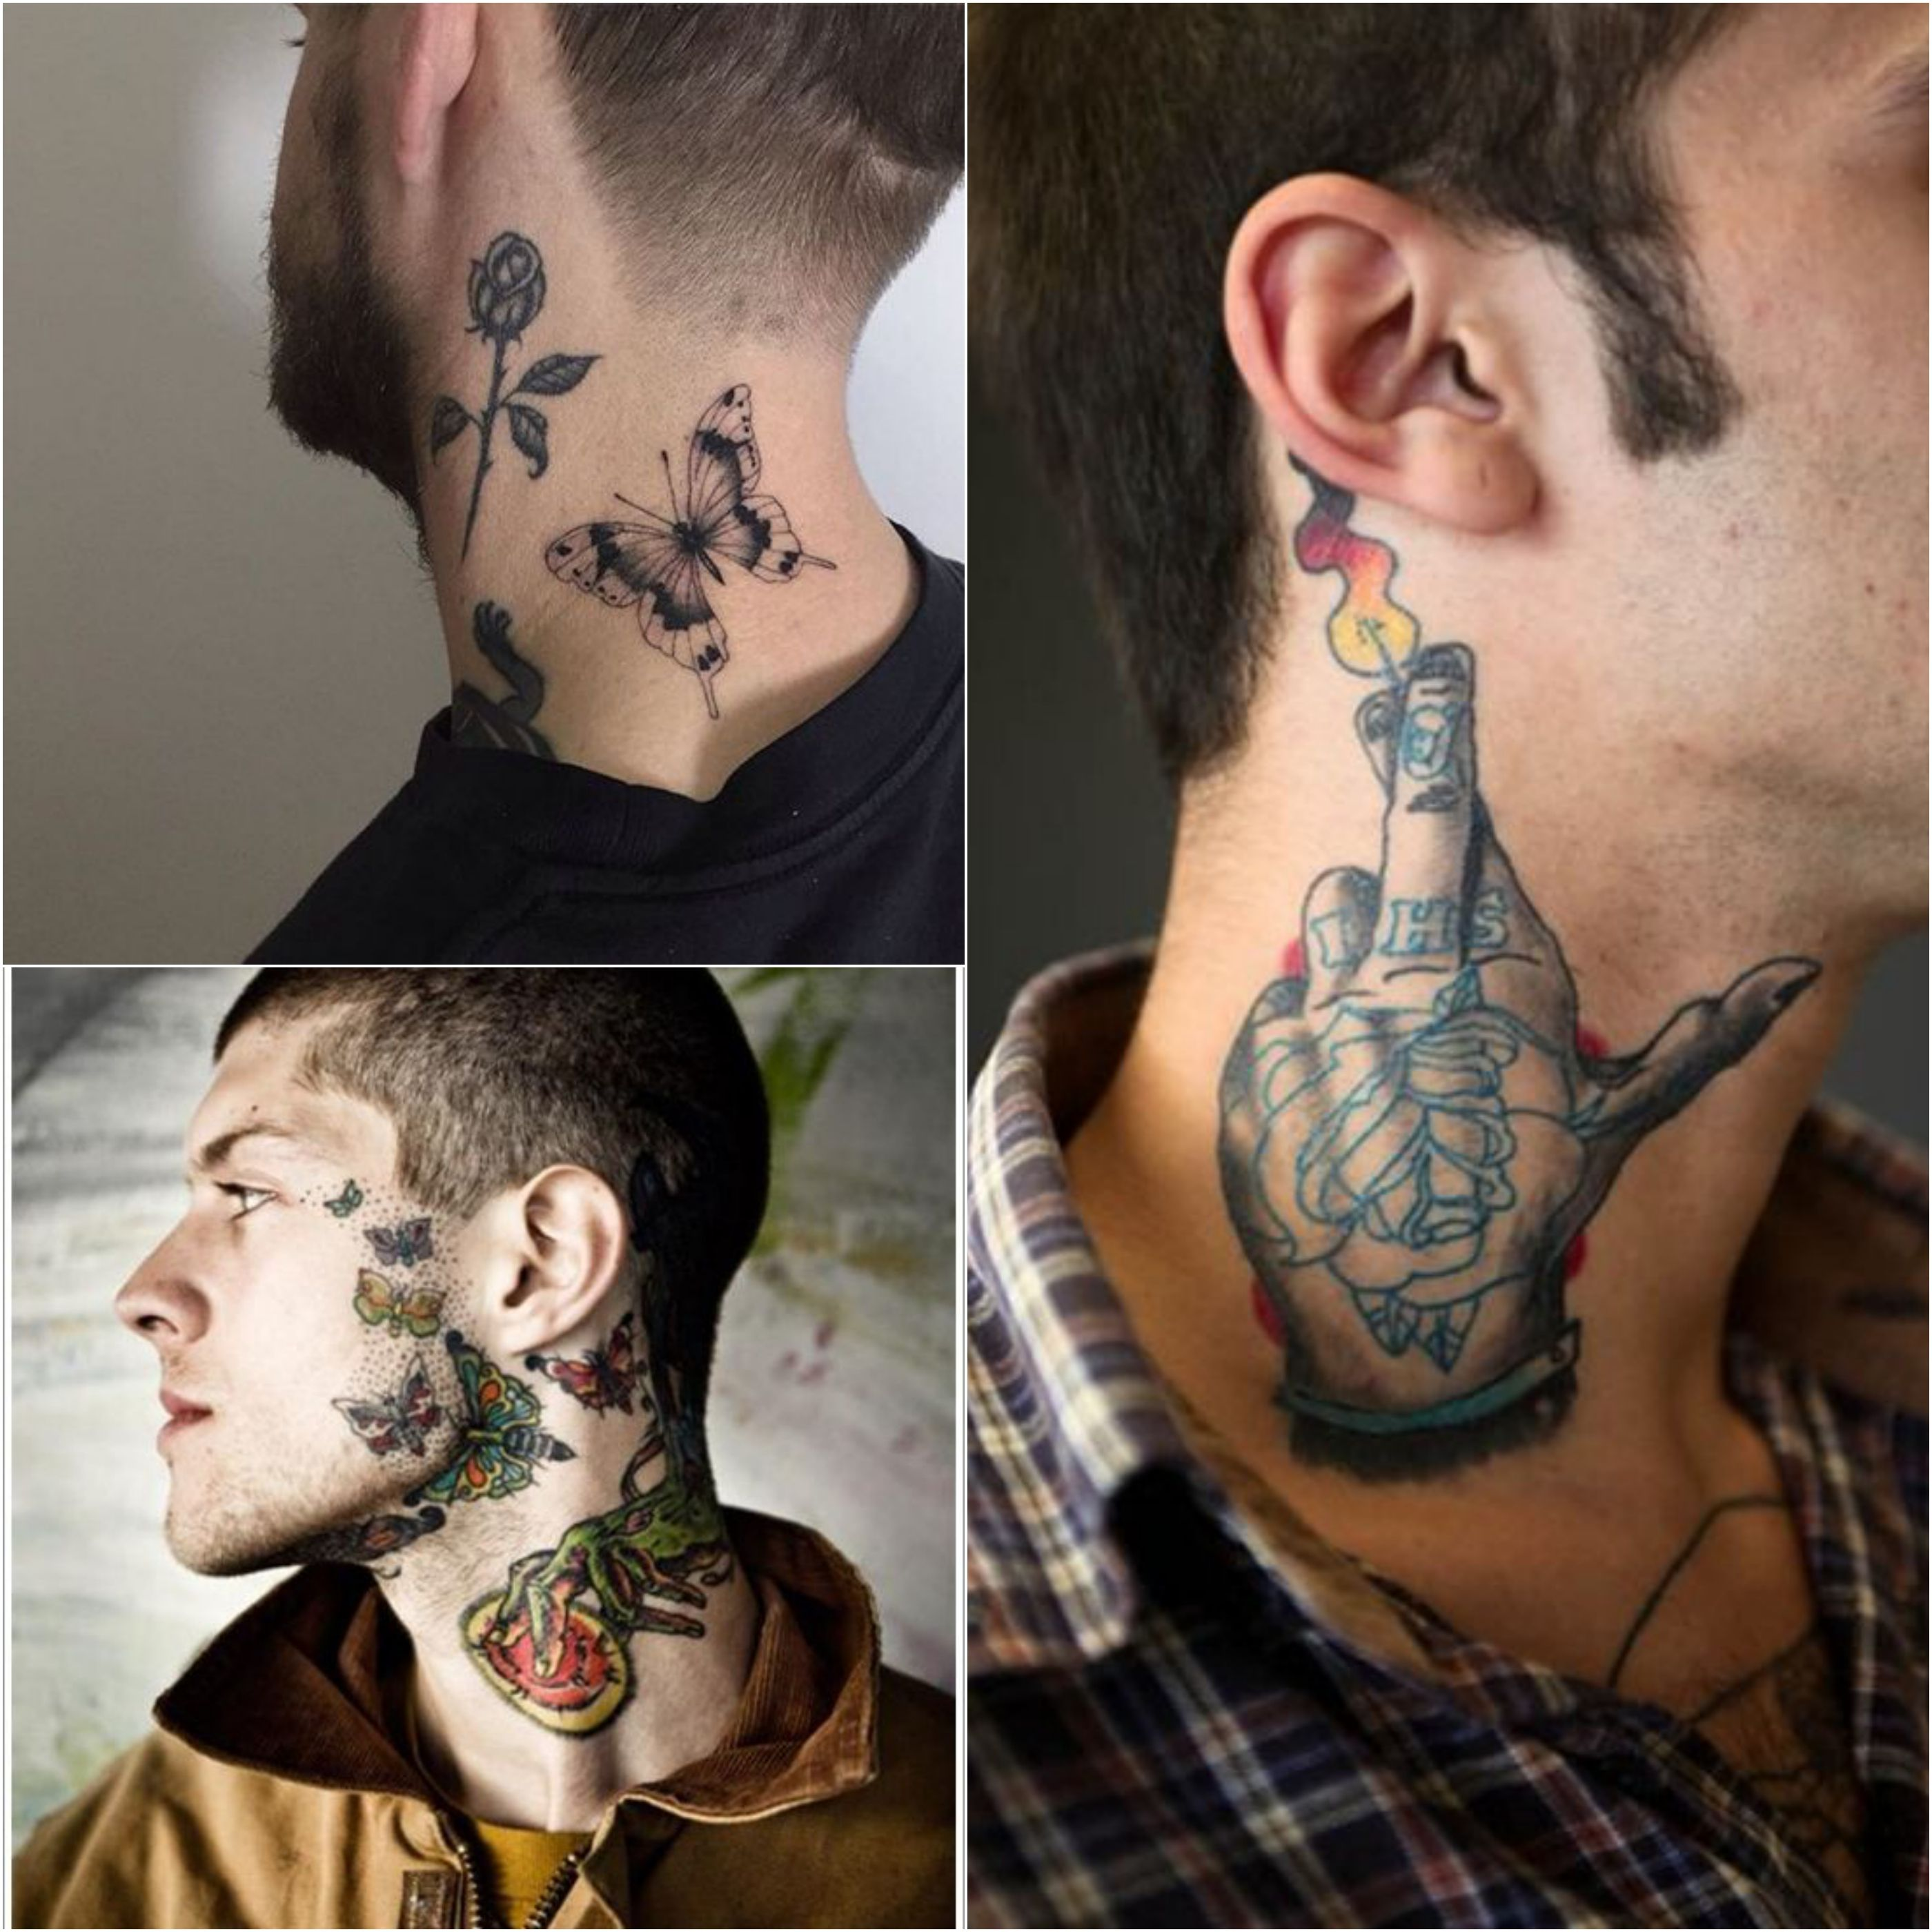 100 Best Neck Tattoo Designs Creative Neck Tattoo Ideas Gallery Side Neck Tattoo Neck Tattoos Women Best Neck Tattoos